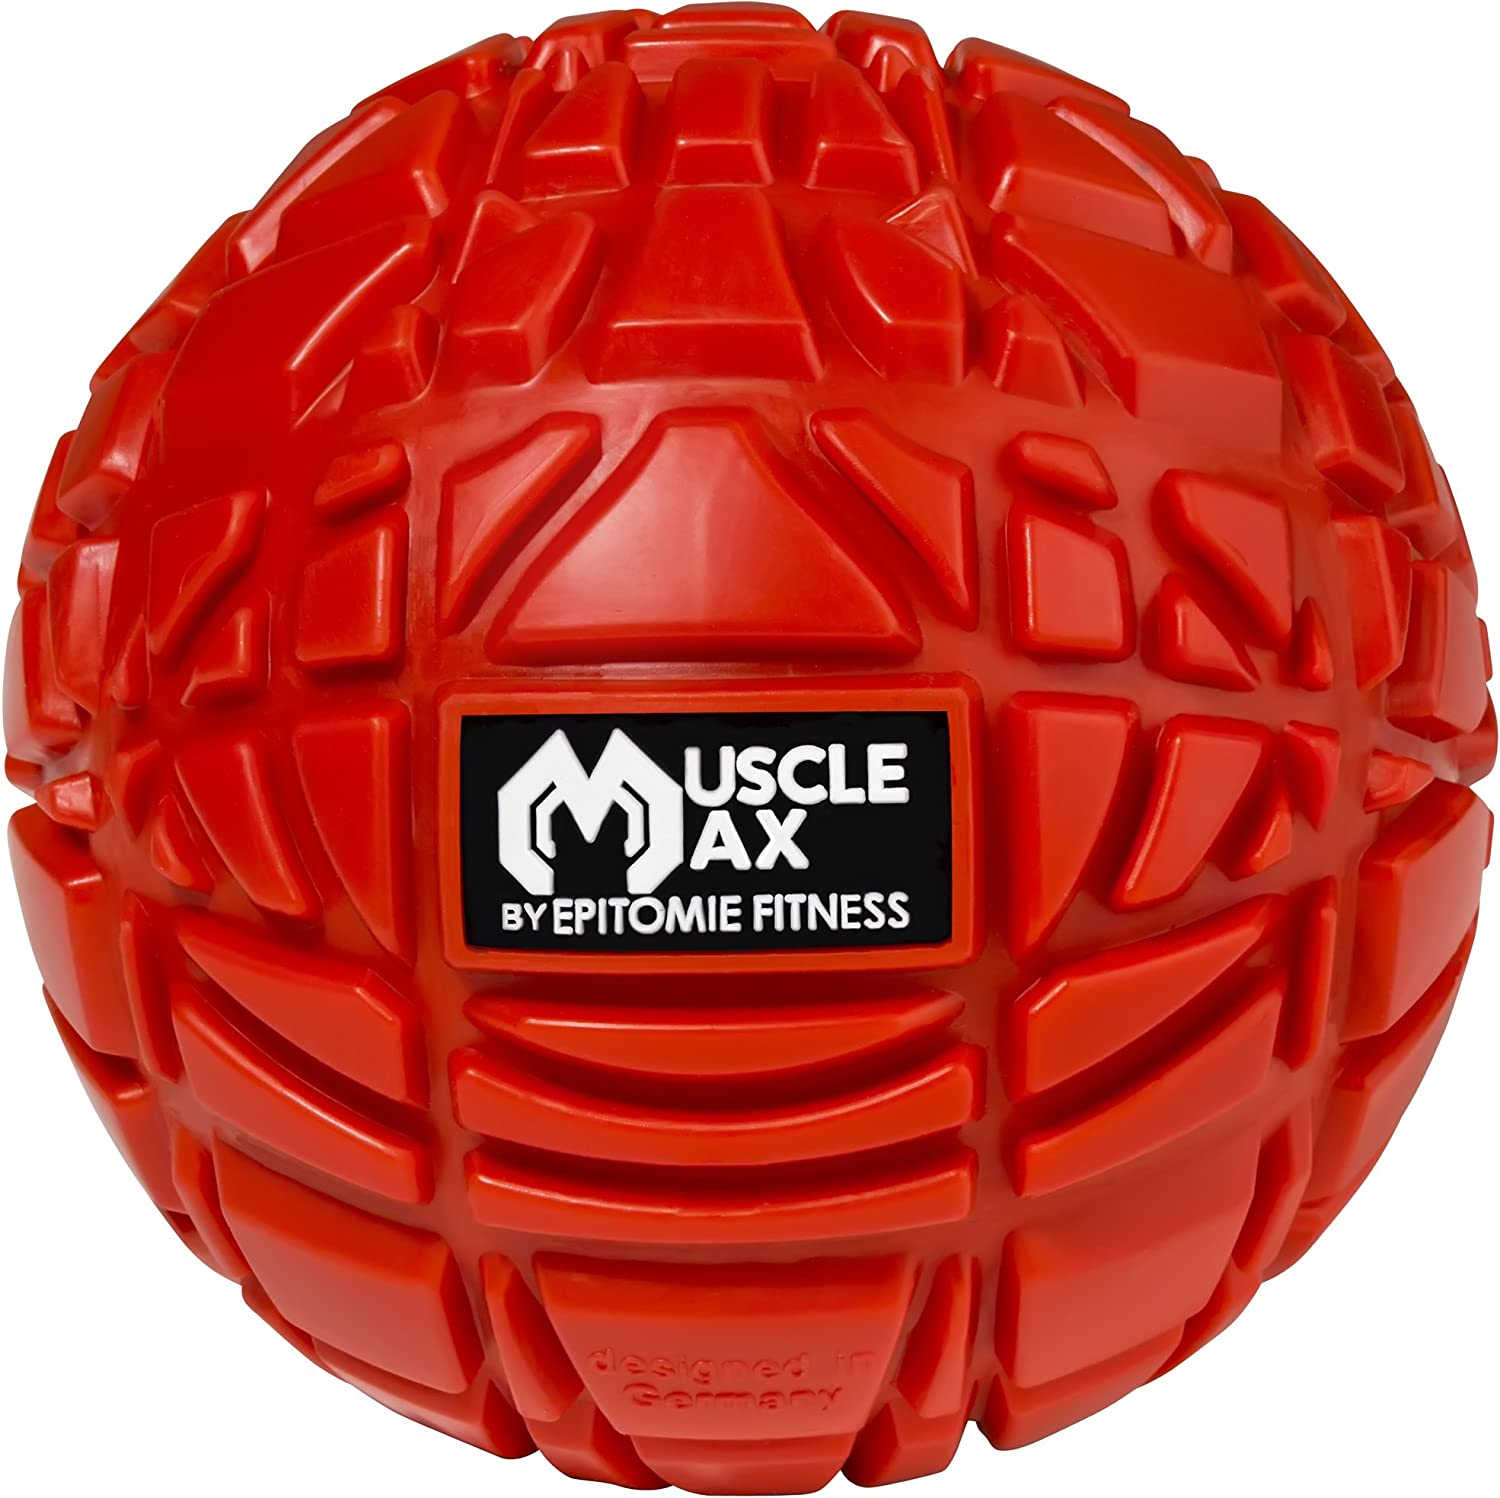 Muscle Max Massage Ball - Therapy Ball for Trigger Point Massage - Deep Tissue Massager for Myofascial Release - Mobility Ball for Exercise & Recovery: Health & Personal Care